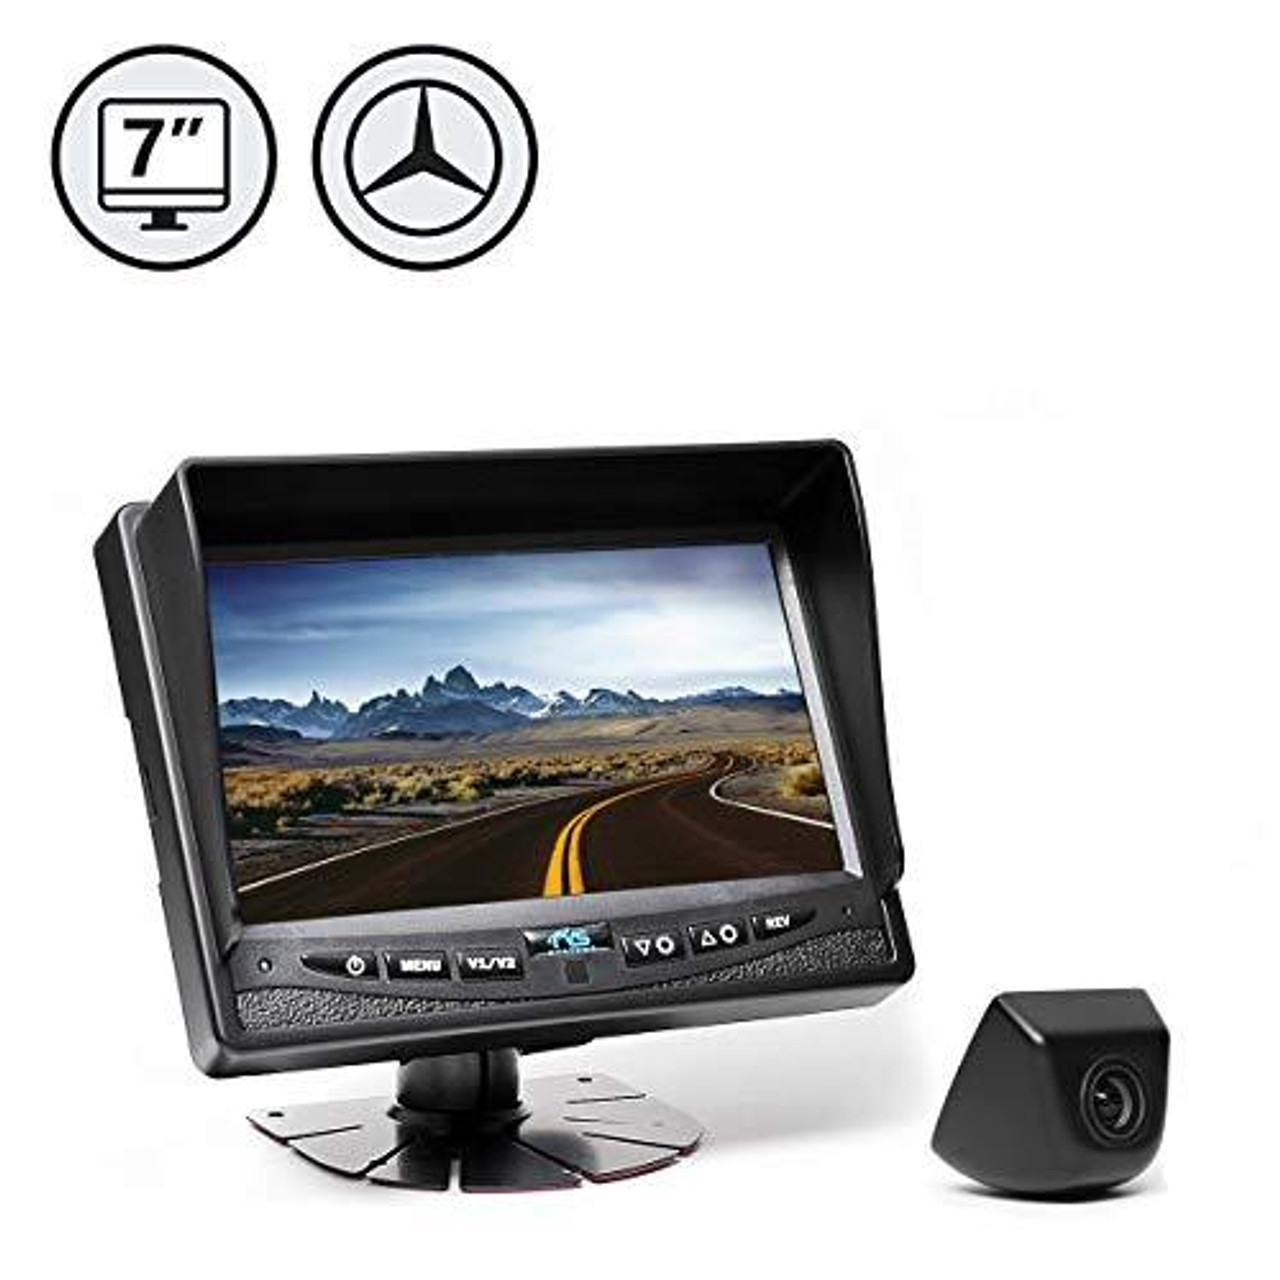 "7"" Display, Backup Camera, Multiplexer Box, 33' Cable"